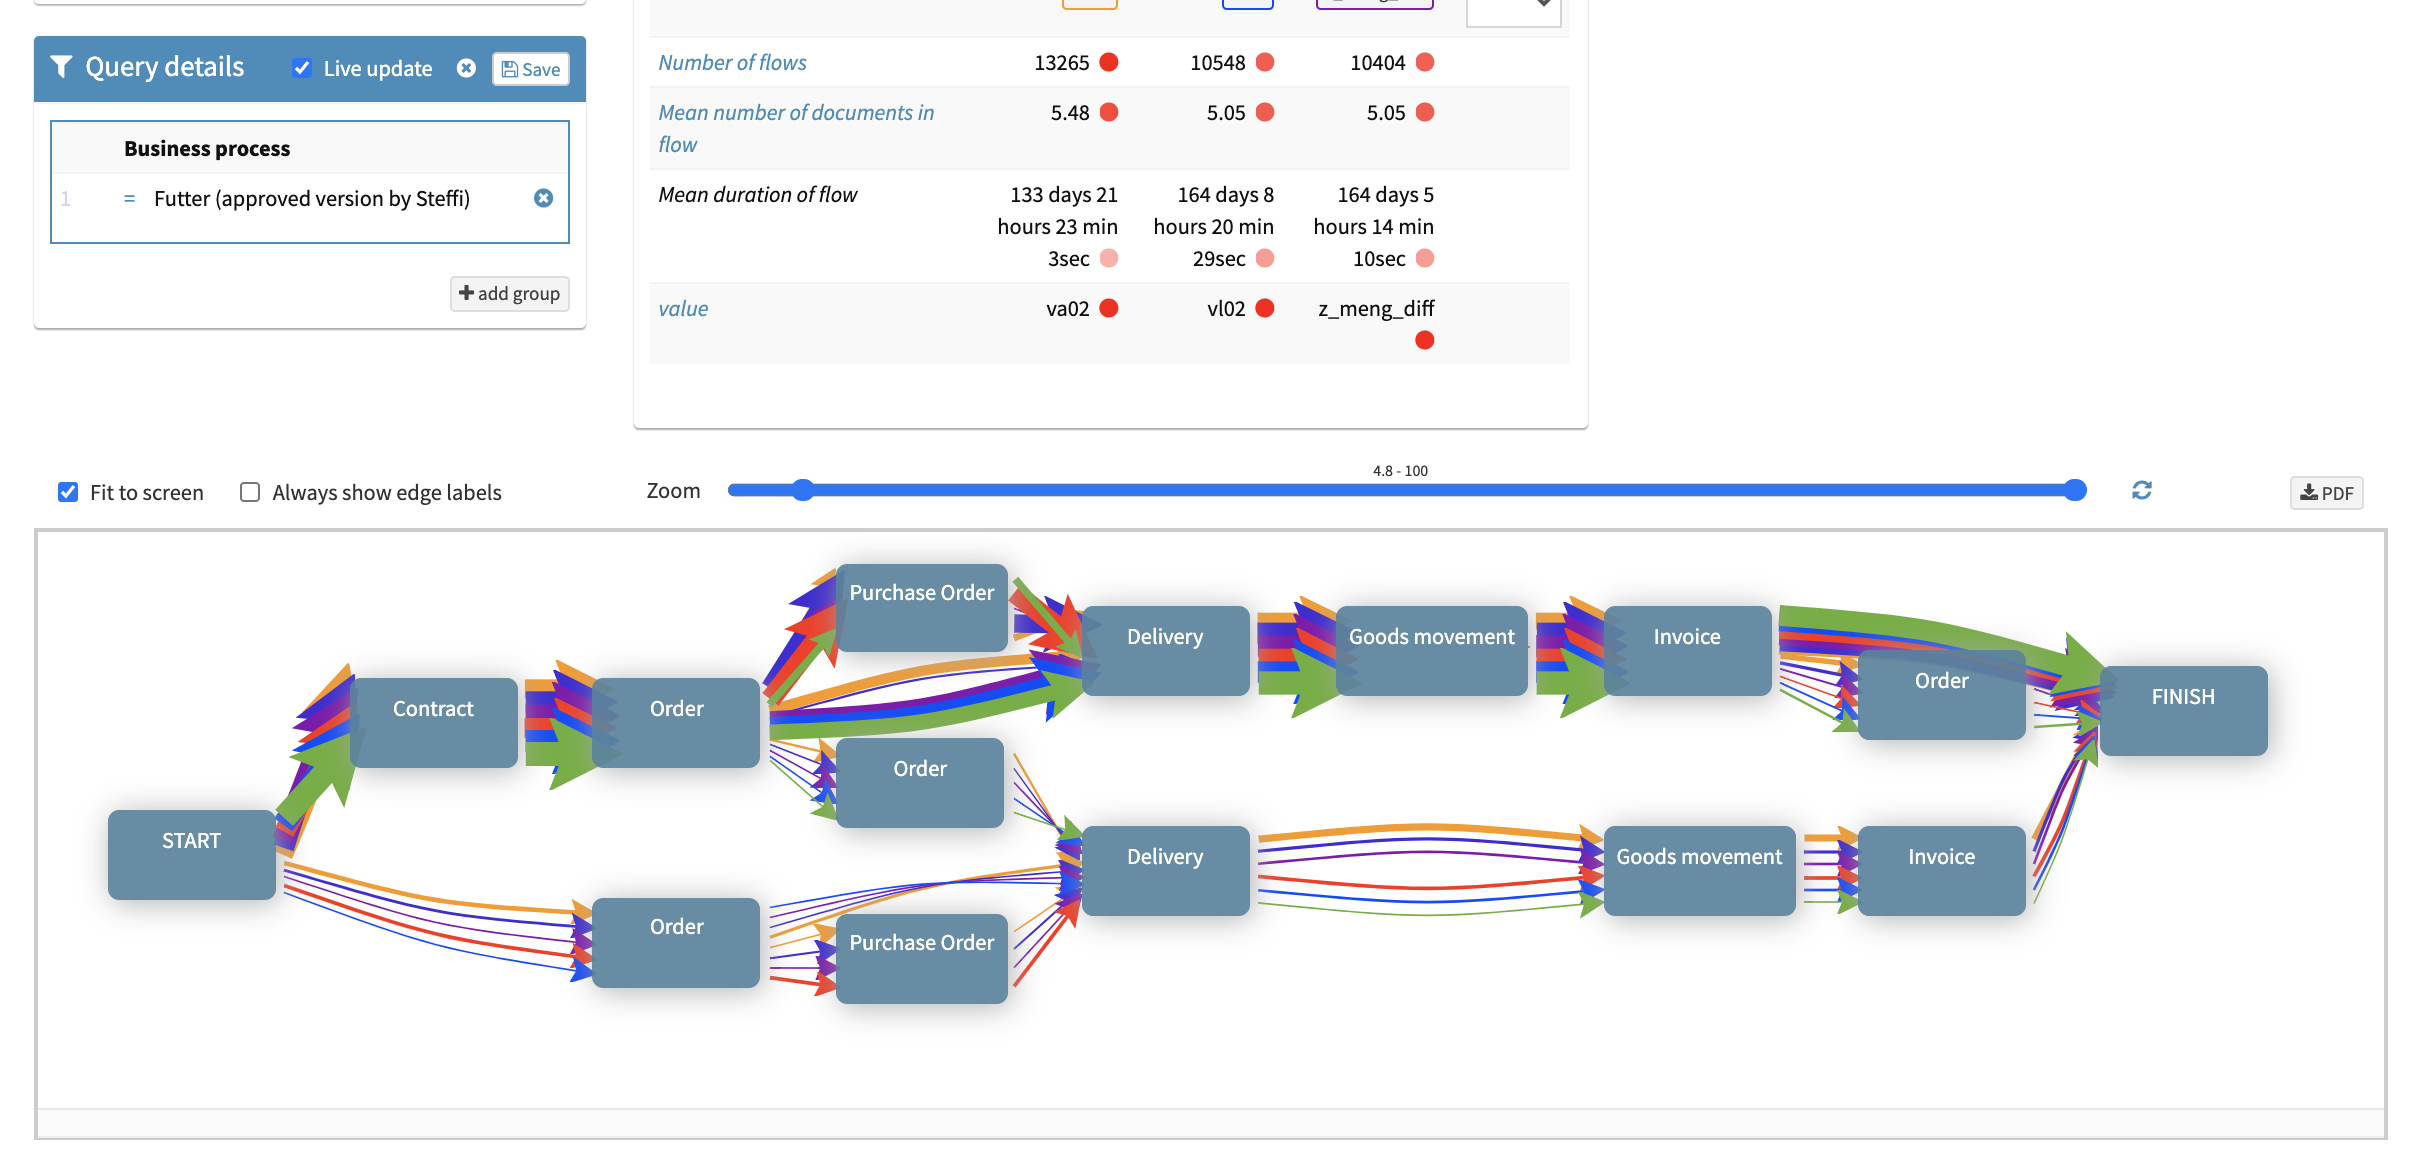 Gekkobrain FLOWS BPM for SAP